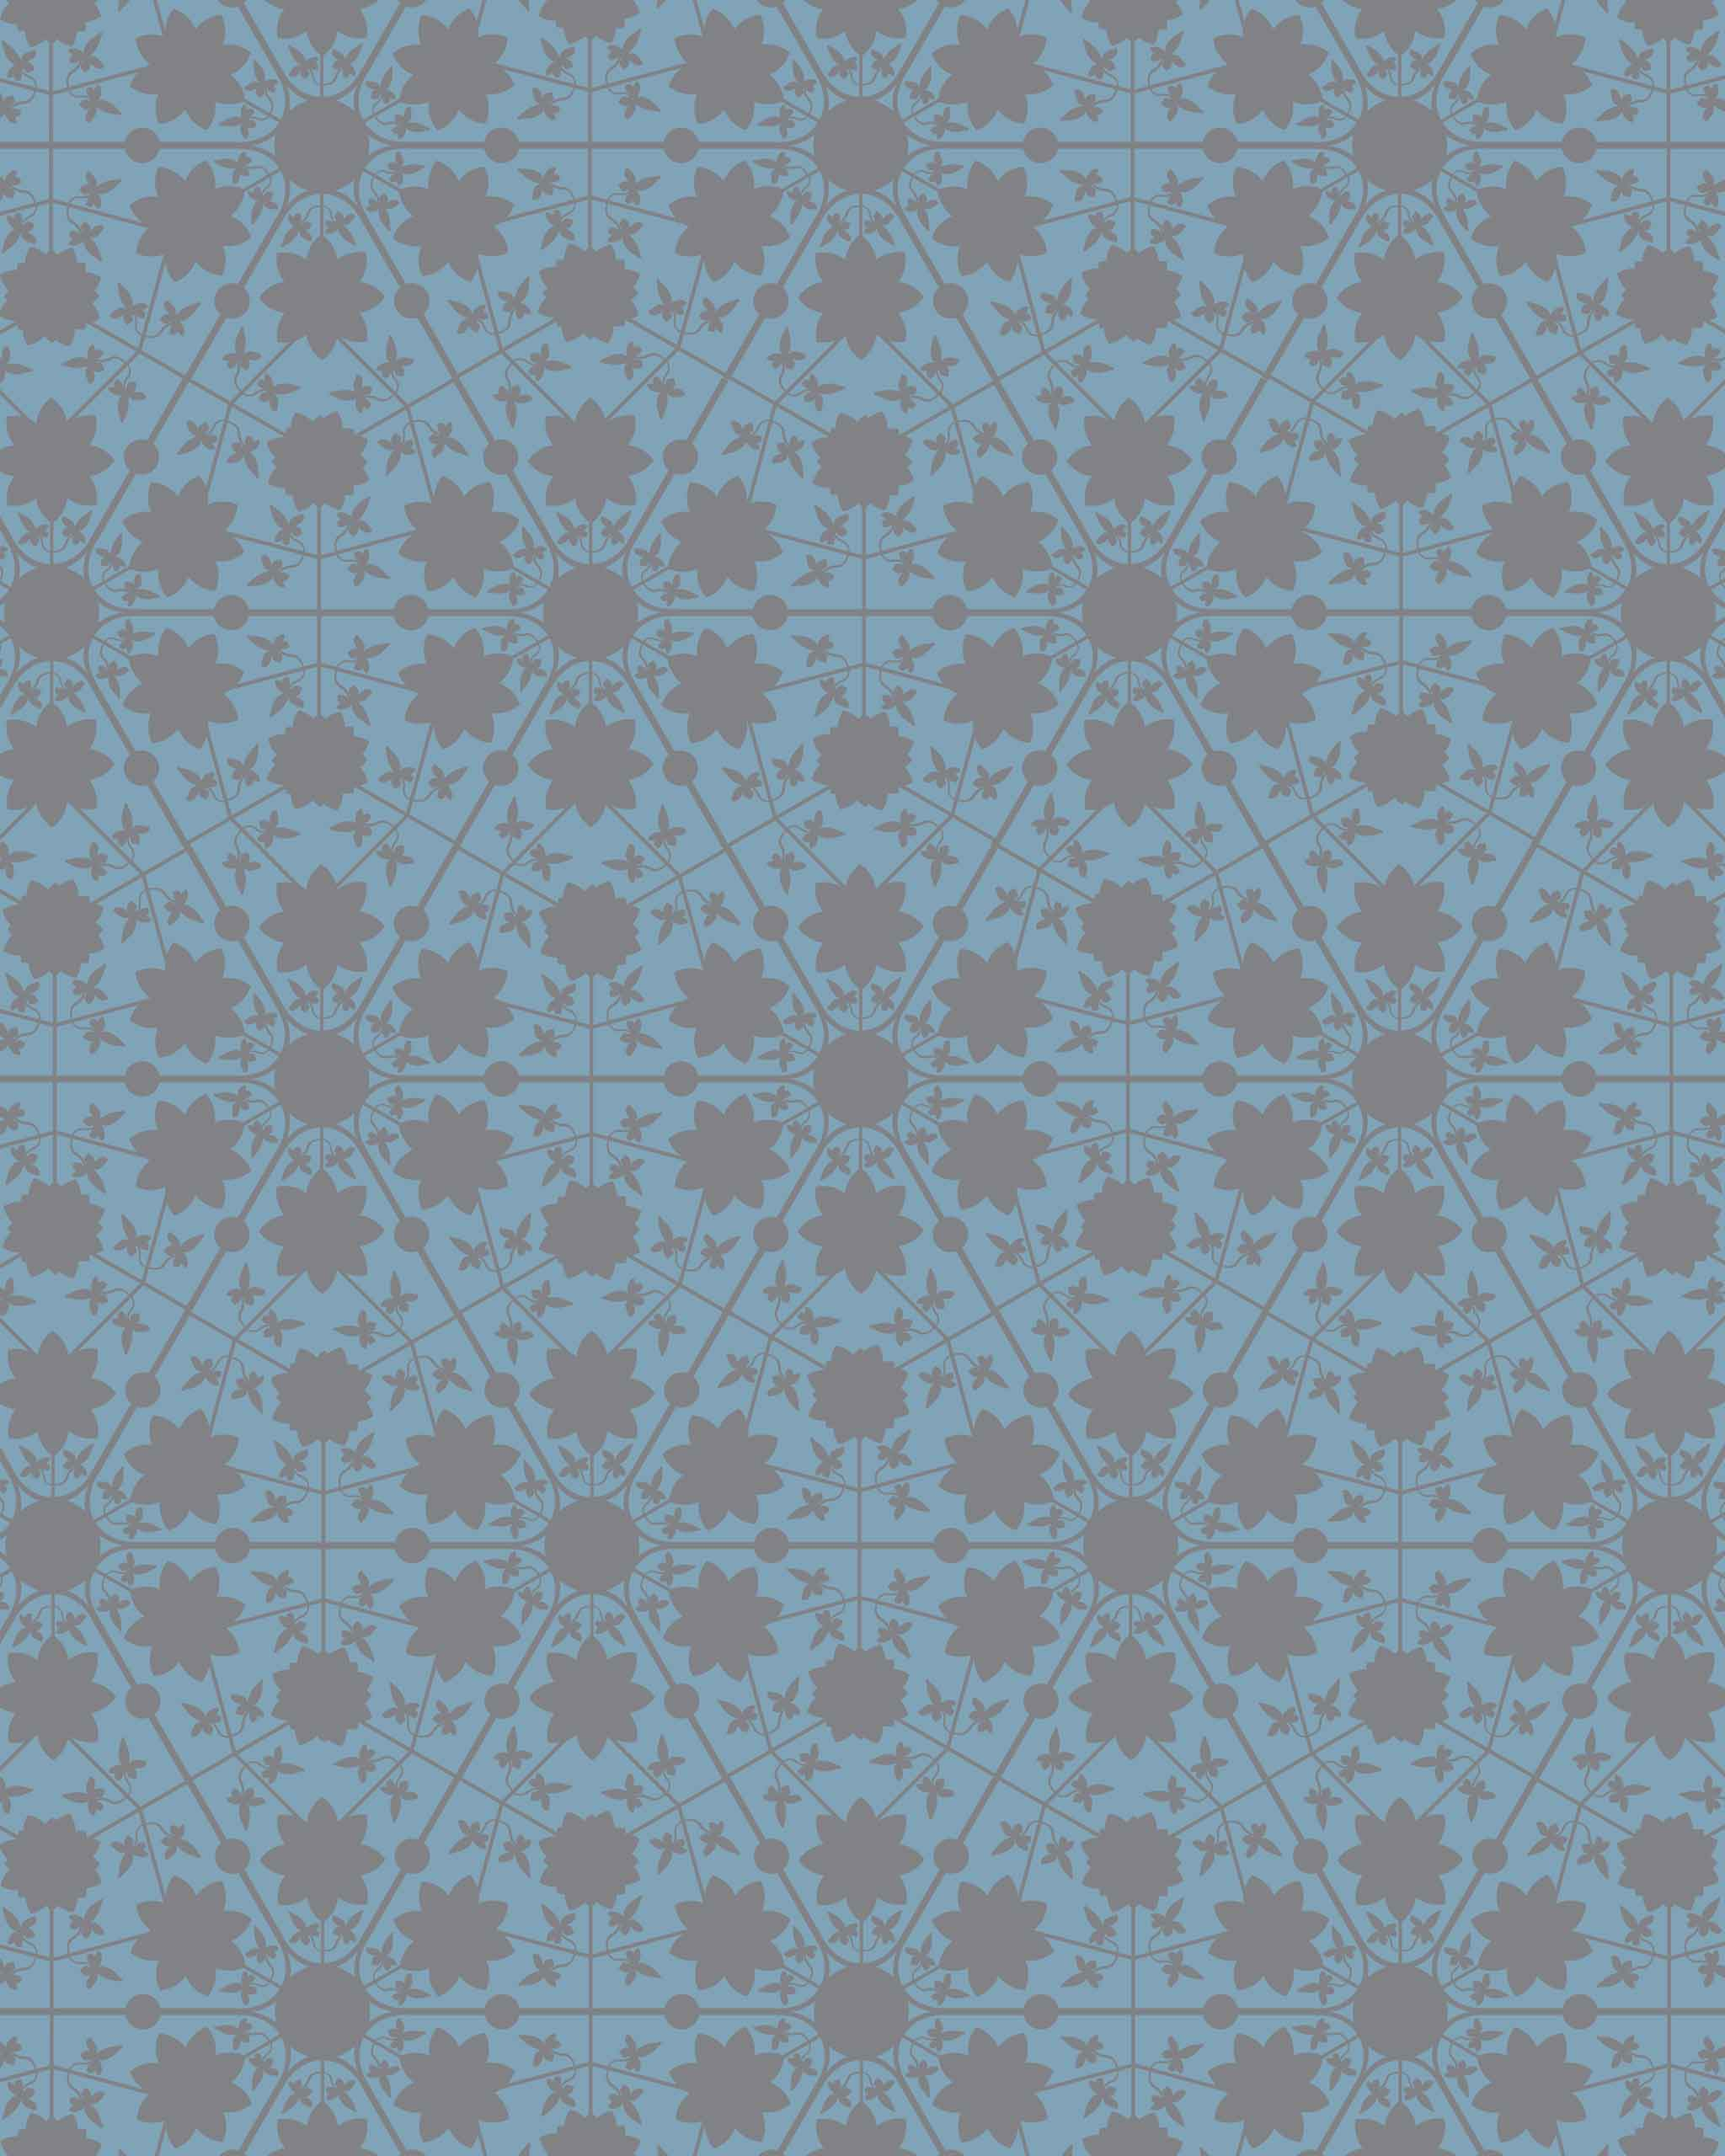 'Bouton' in colour 'Frost' as designed by Michael Christie for what was Red Spruce.